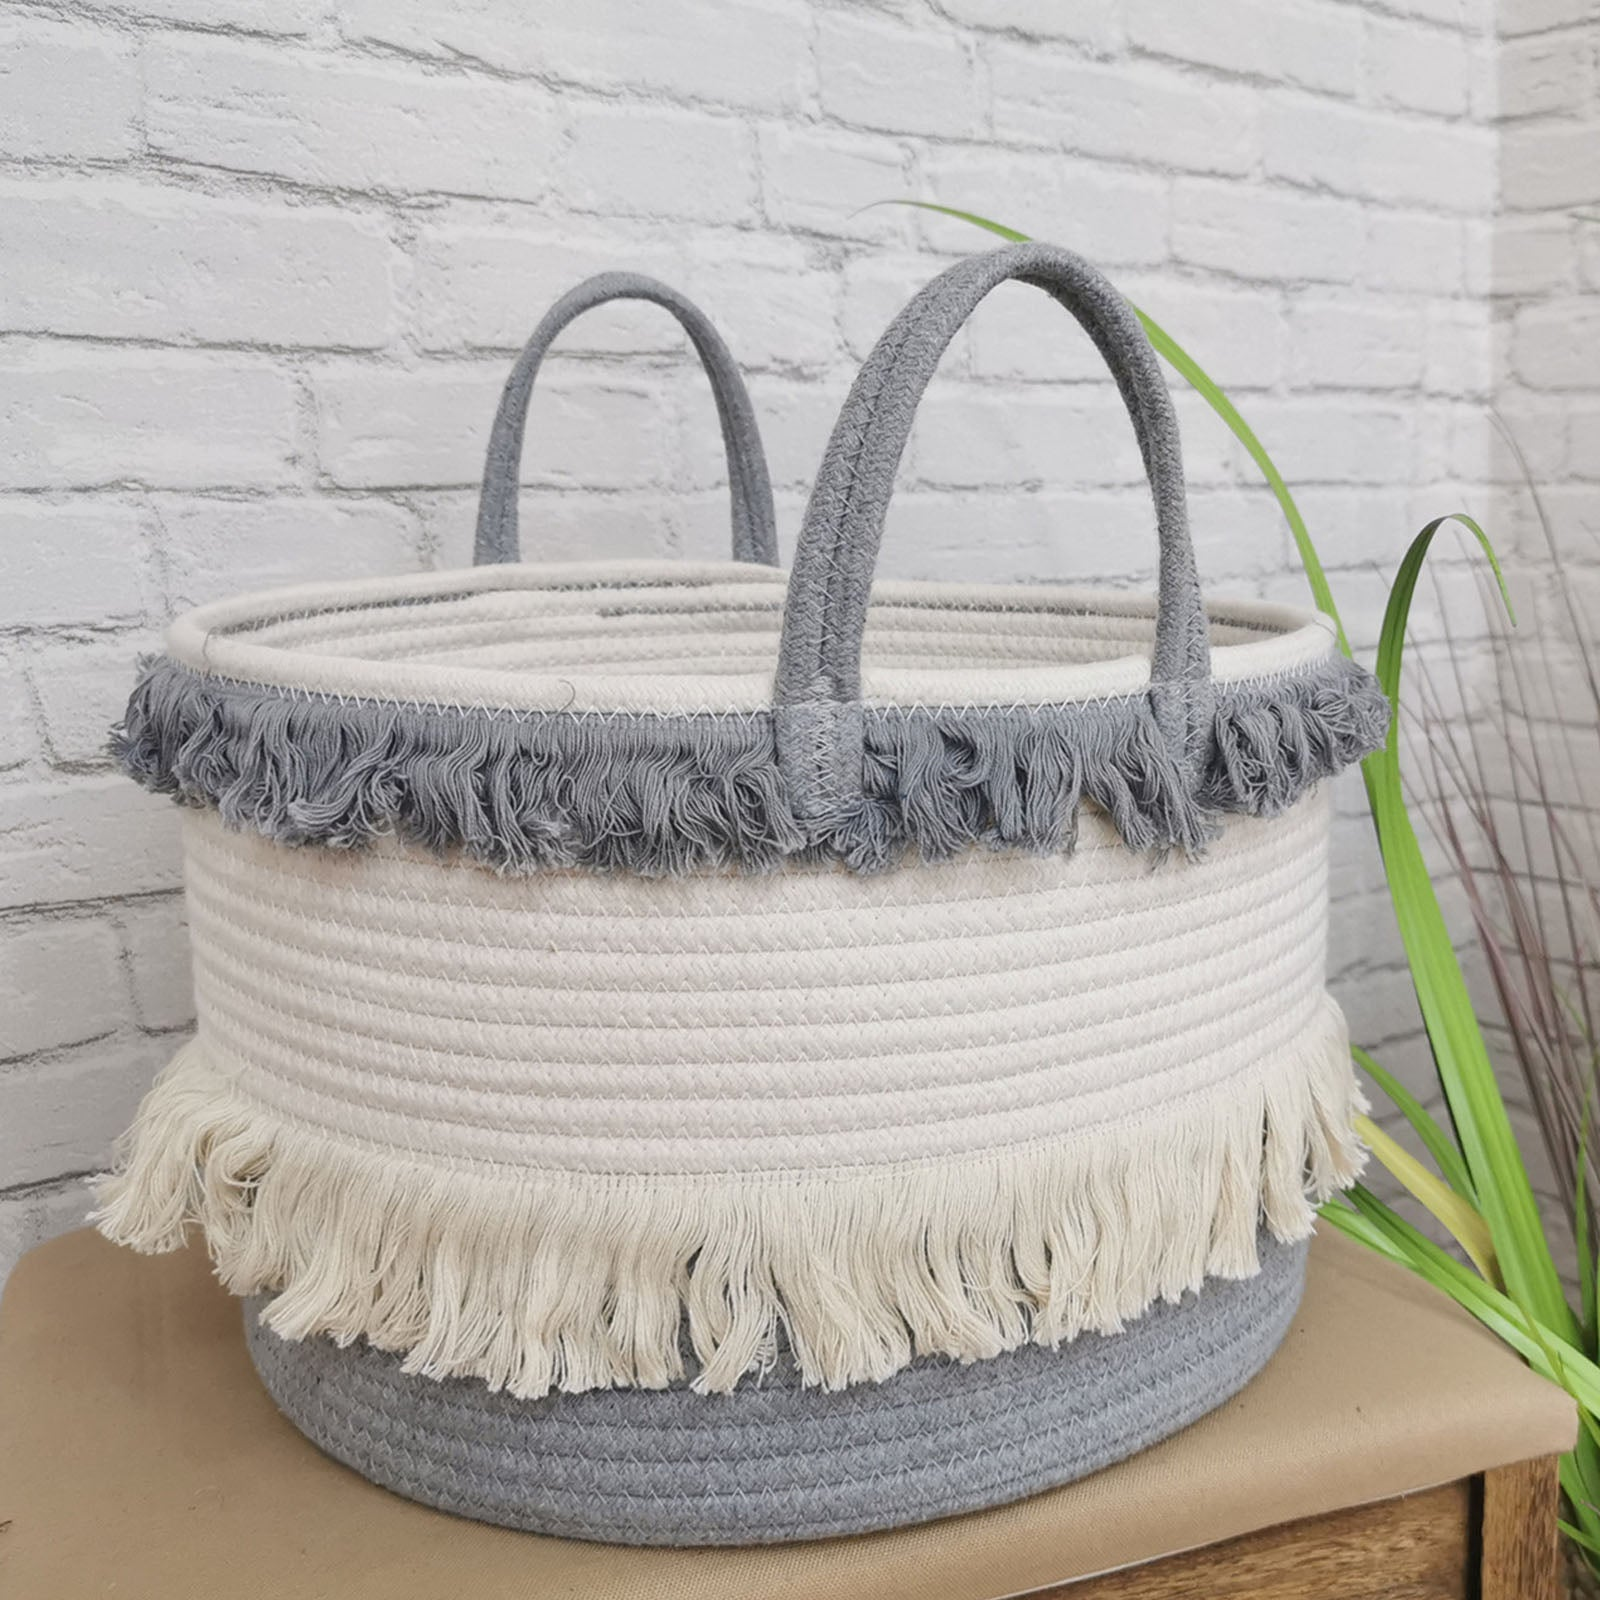 Handmade Basket 190410-011 -  سلة مصنوعة يدويا - Shop Online Furniture and Home Decor Store in Dubai, UAE at ebarza